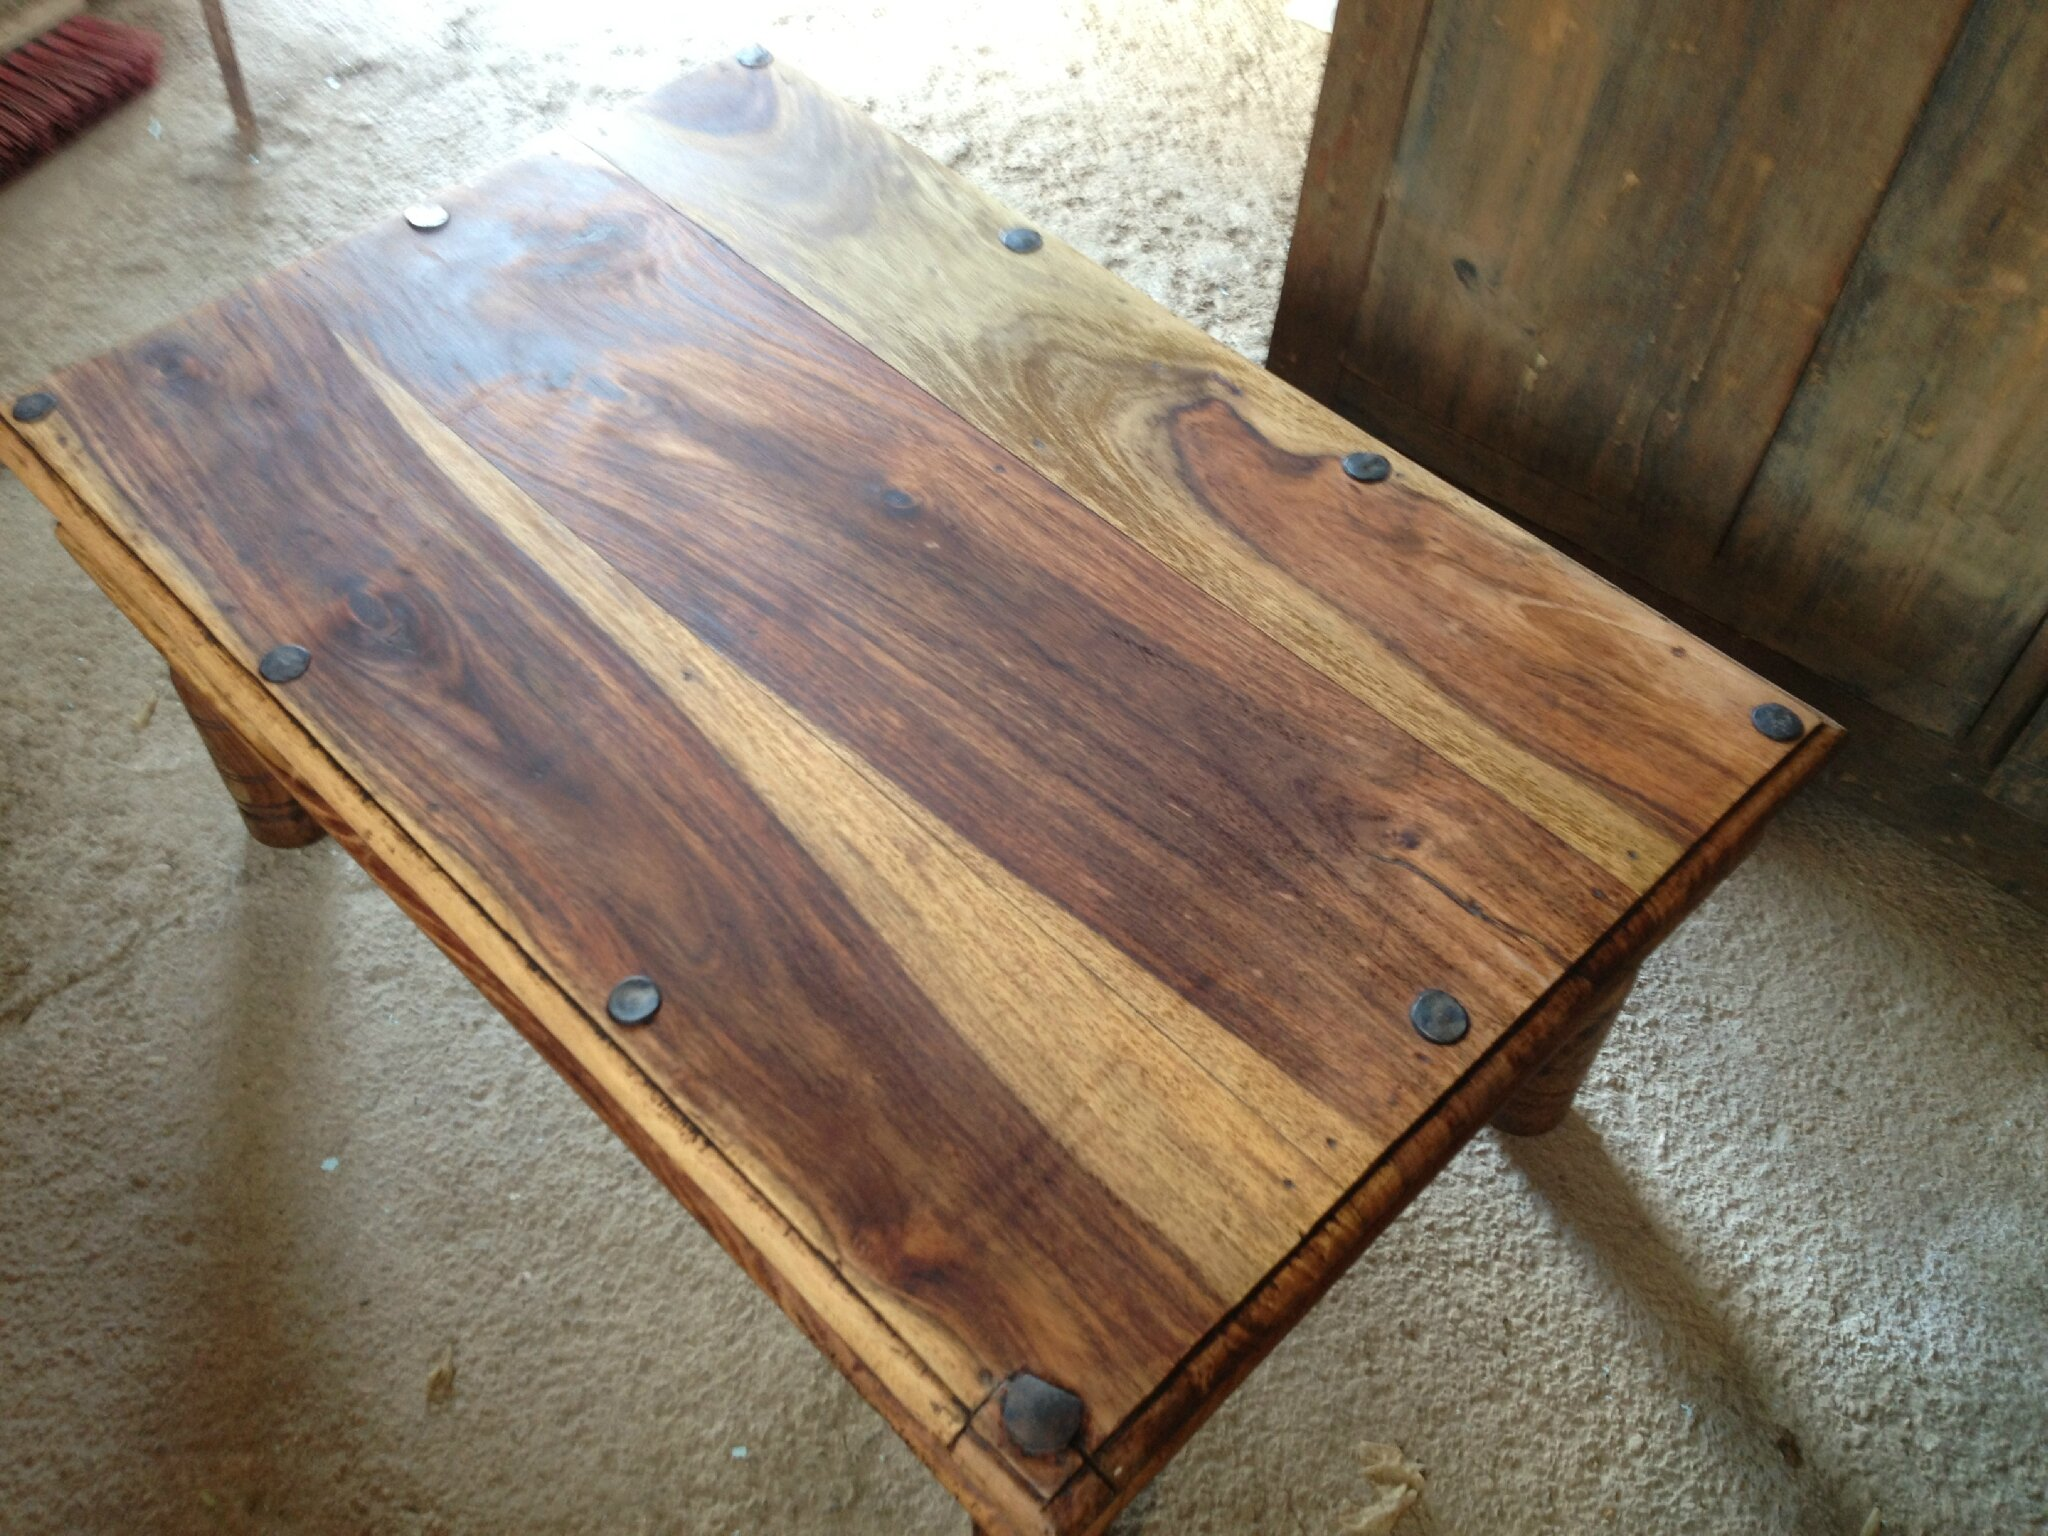 Renover une table basse en bois - Customiser une table en bois ...